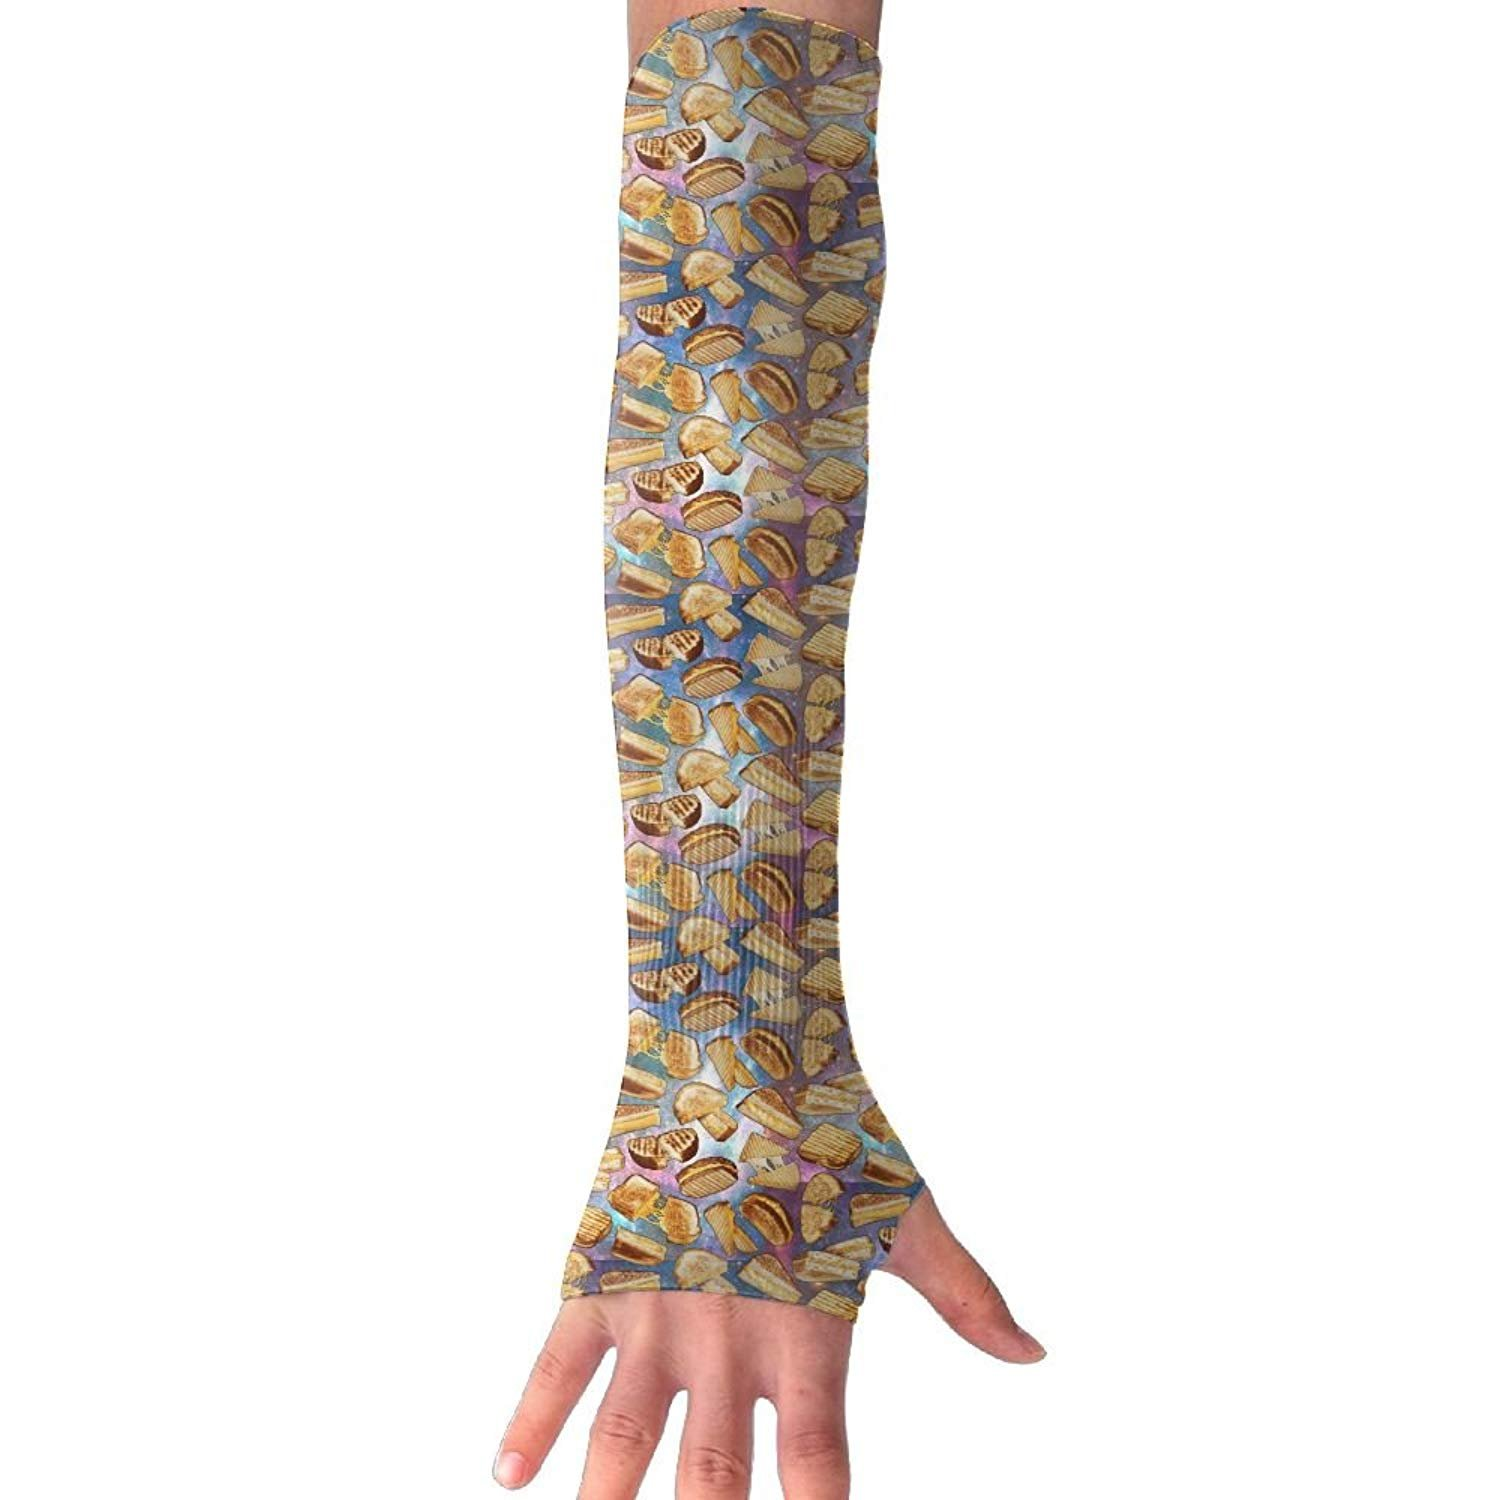 Unisex Galaxy Cheese Cookie Sunscreen Outdoor Travel Arm Warmer Long Sleeves Glove